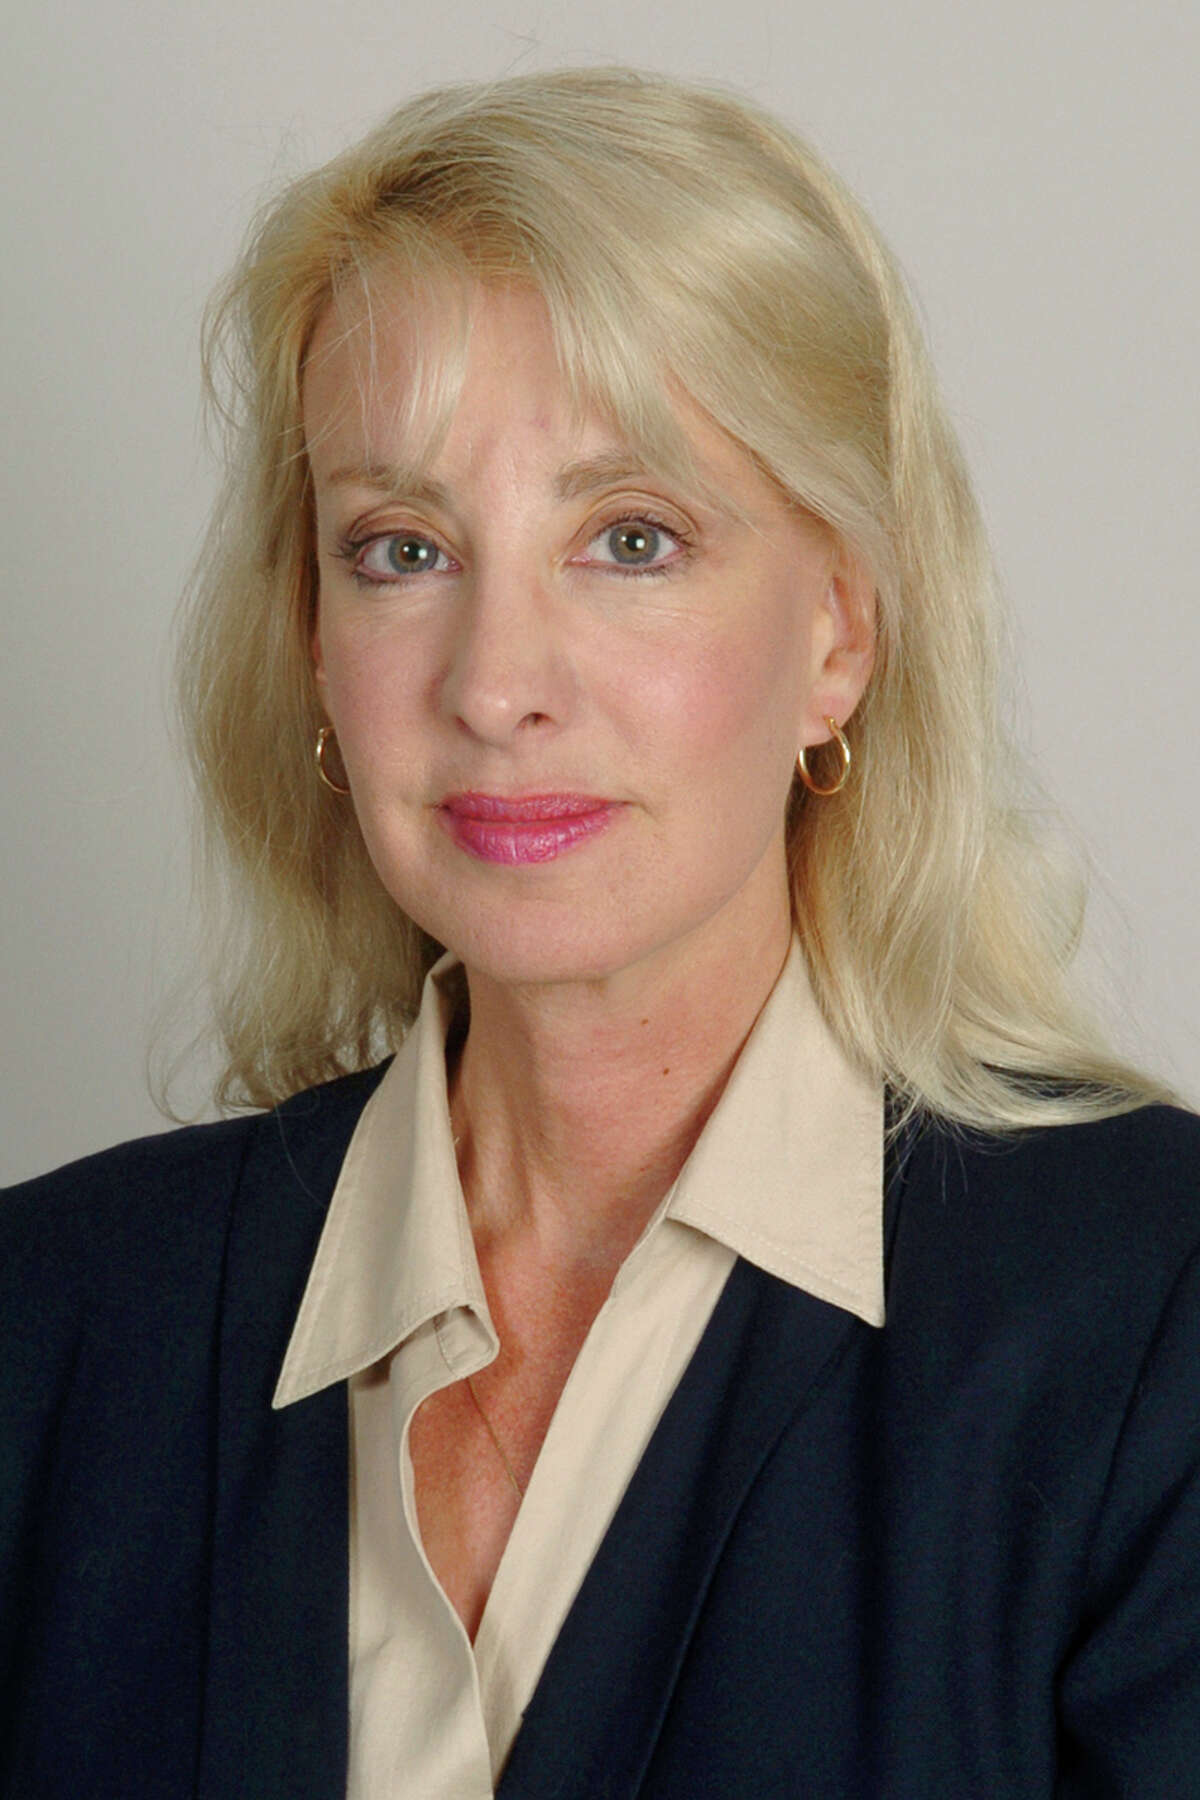 Lee Whitnum announced she is a 2014 Candidate for Governor, Connecticut (D)